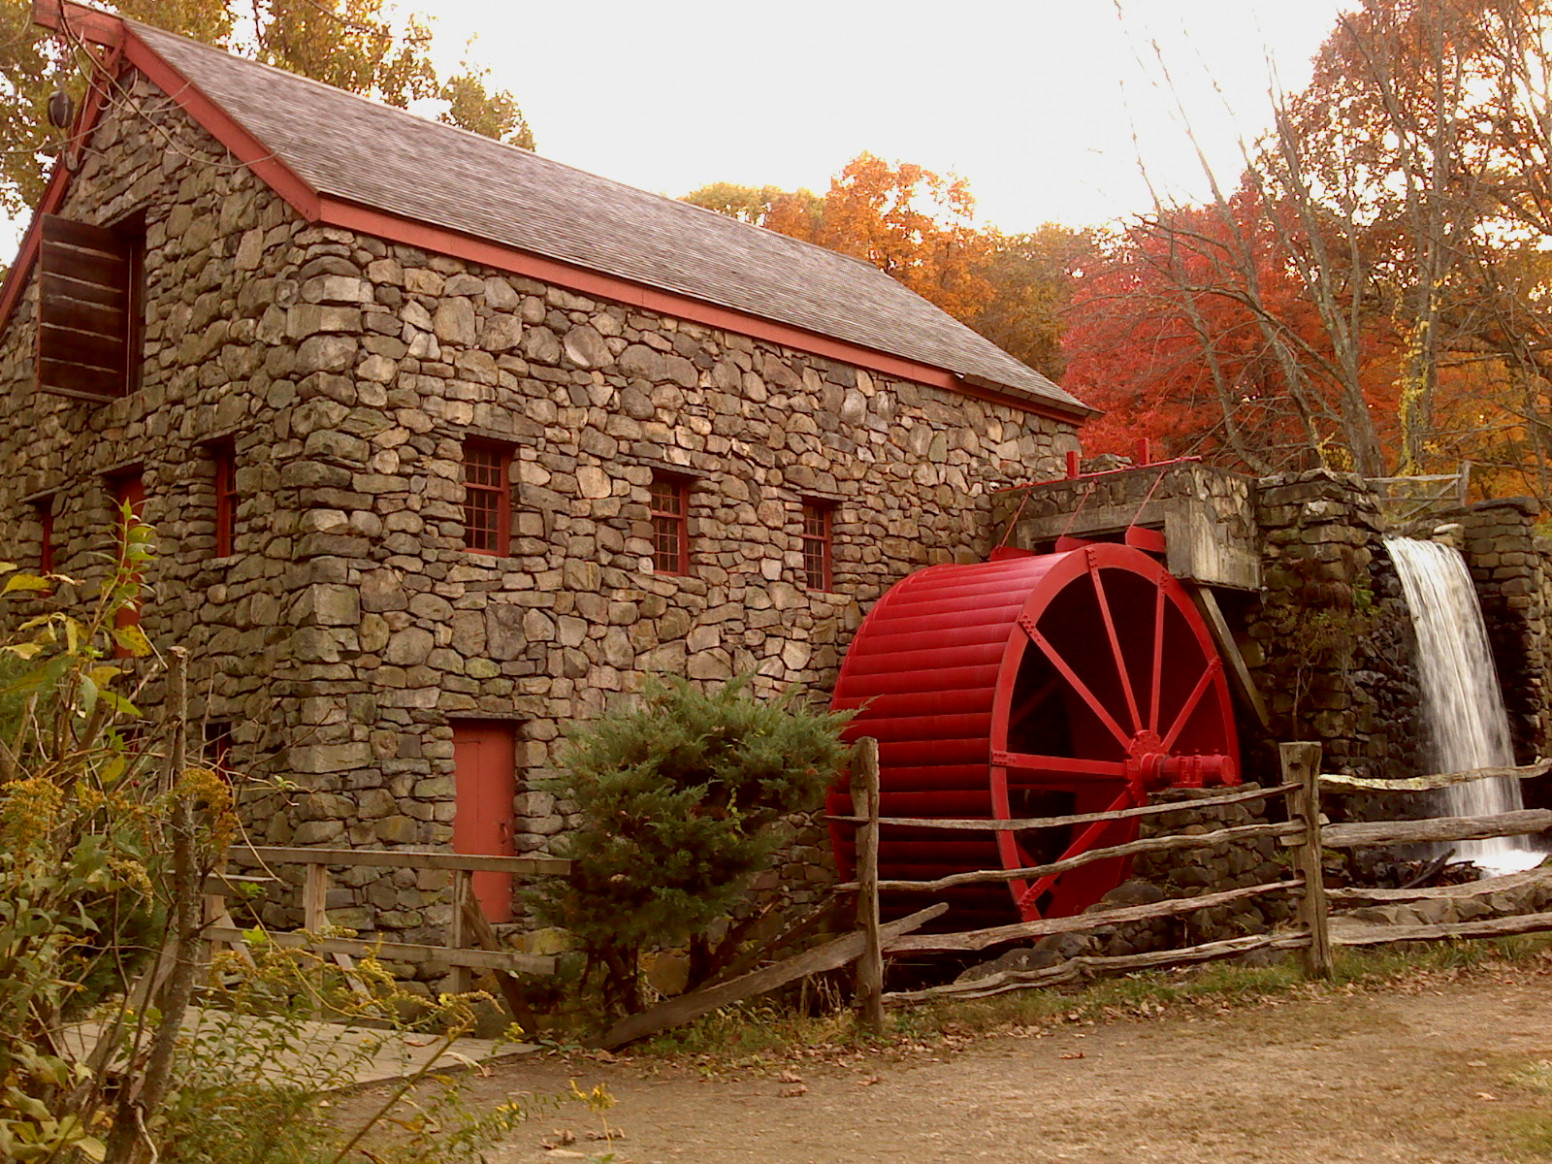 The Wayside Inn Grist Mill | Photos - New England Today - recipes boiled dinner